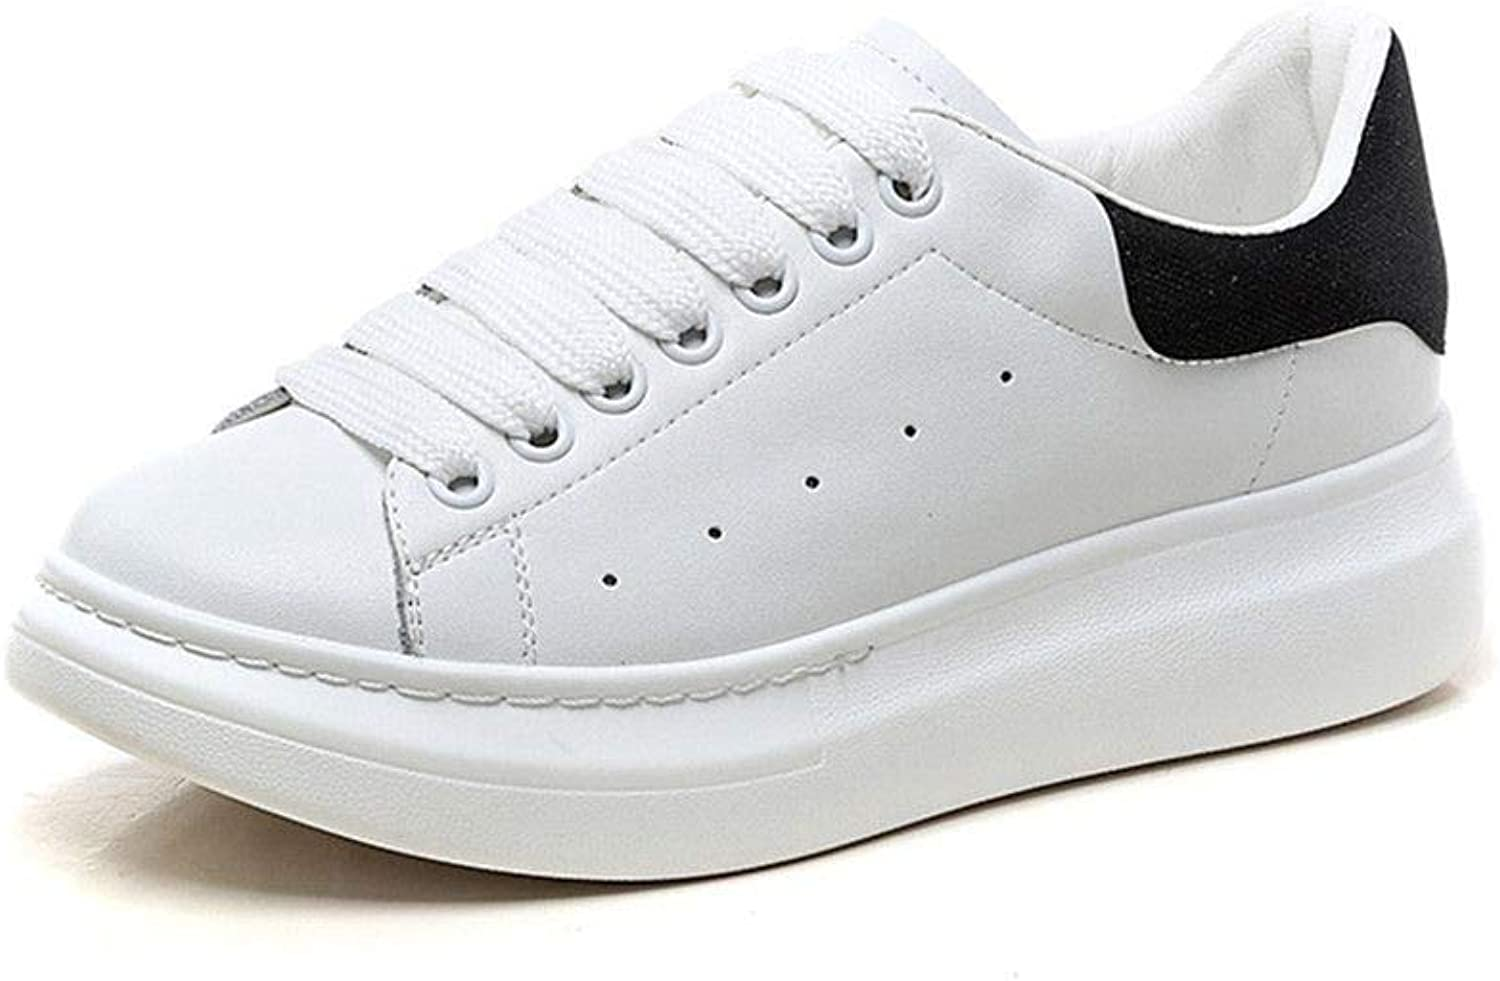 Newnorthstar Spring Autumn Genuine Leather Sneakers Women White shoes Fashion Lace-up Platform shoes for Women